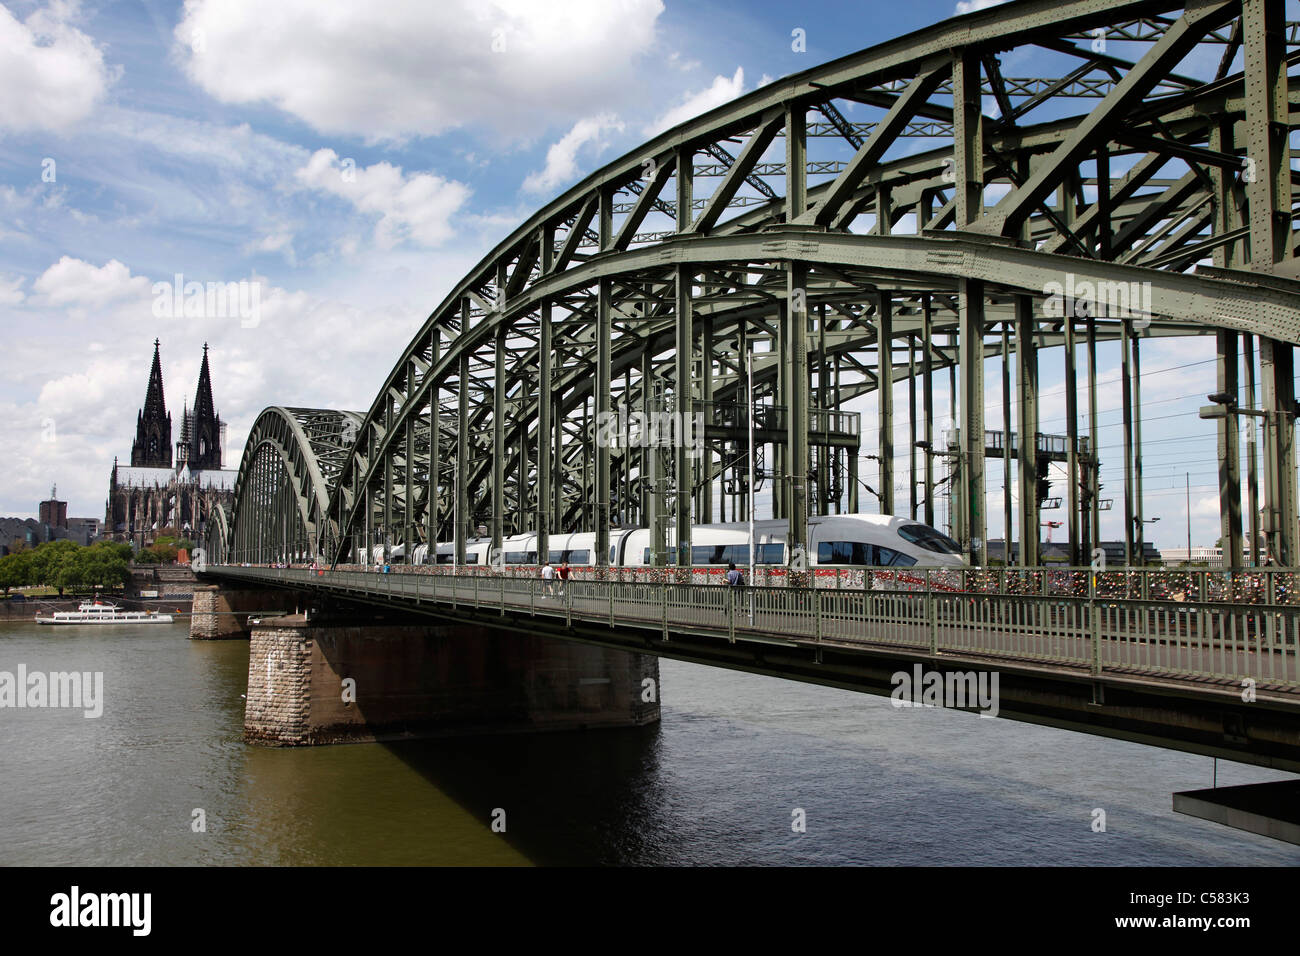 Skyline of Cologne, Germany. River Rhine, Hohenzollern railway bridge, Cologne cathedral. - Stock Image